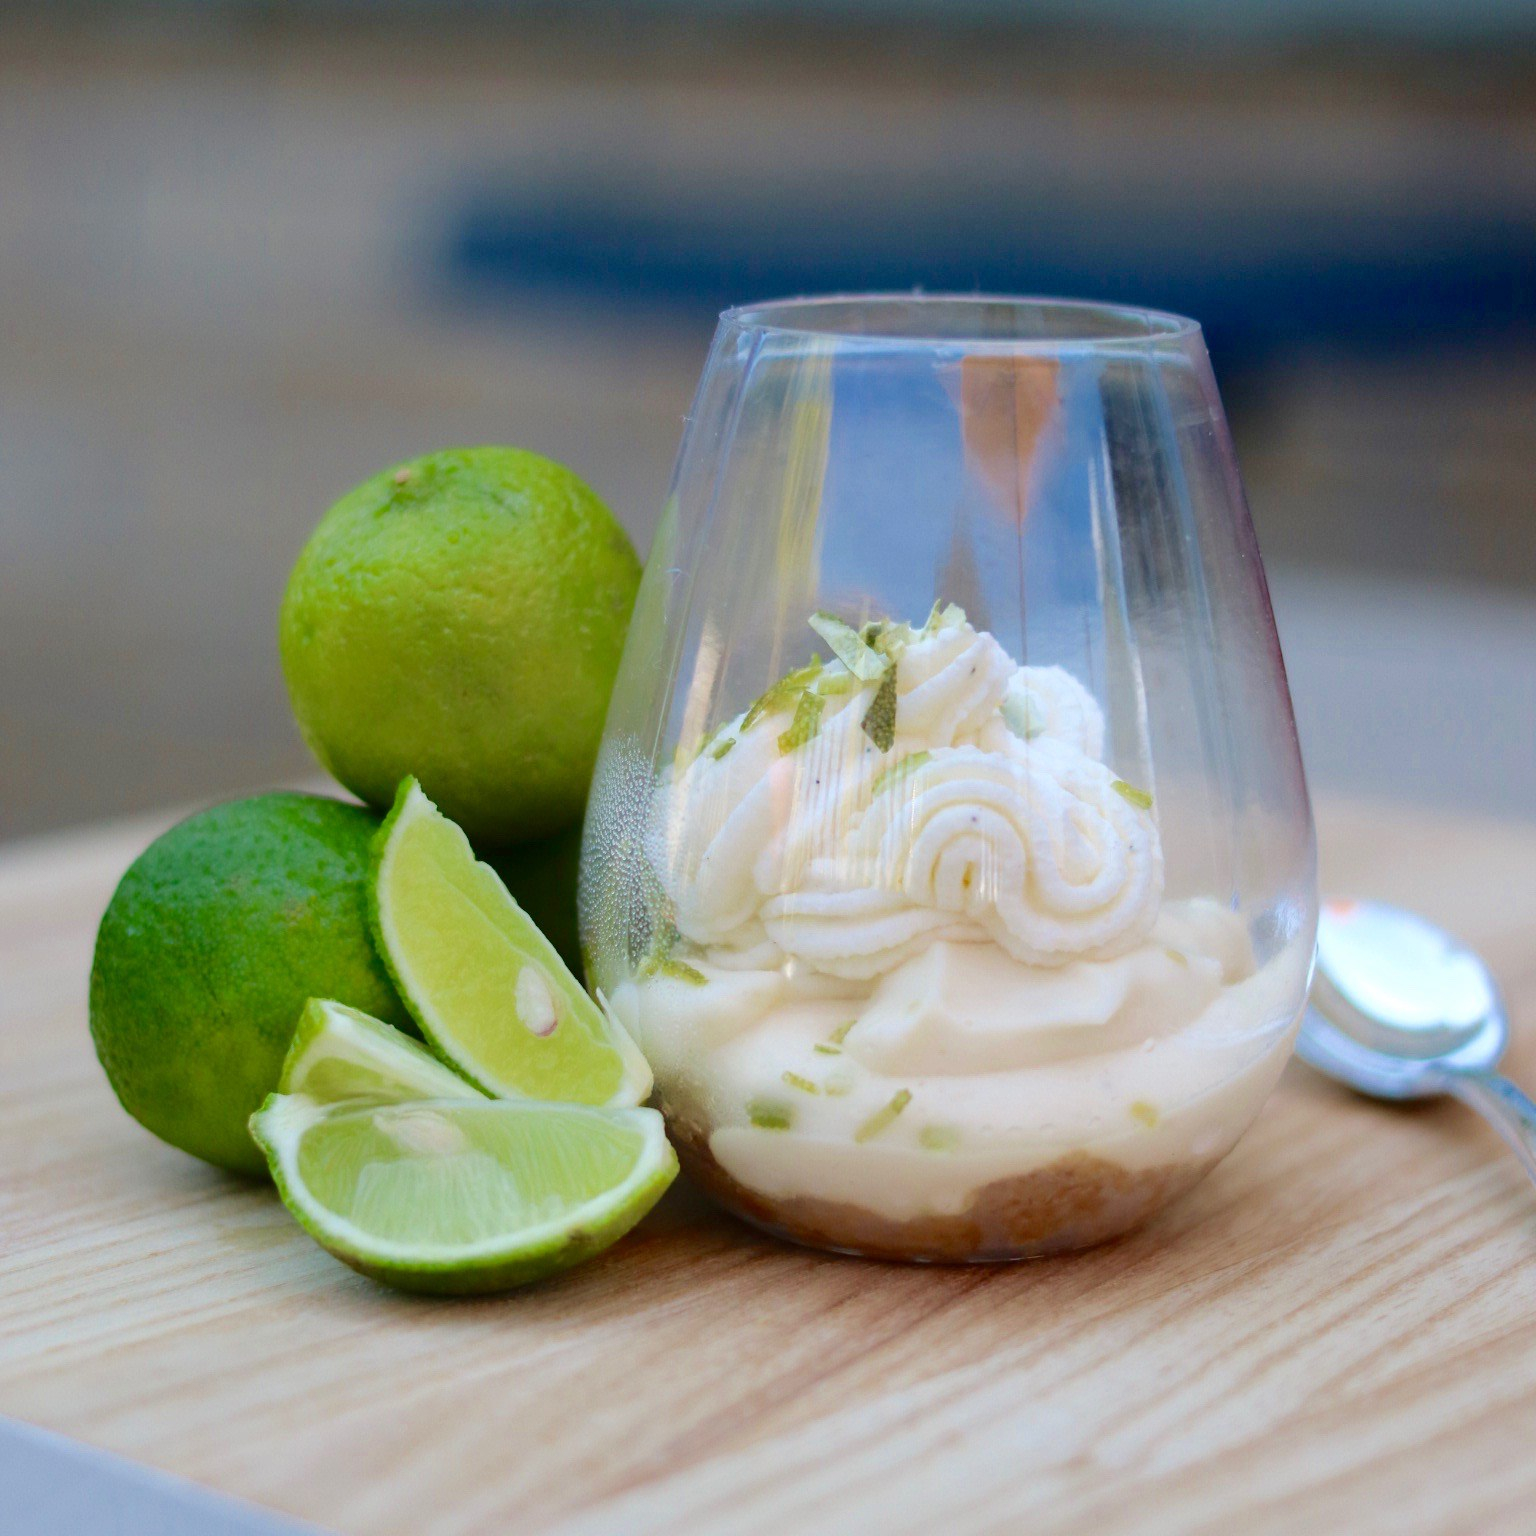 Mini Frozen Key Lime Cheesecake in Dessert Cup